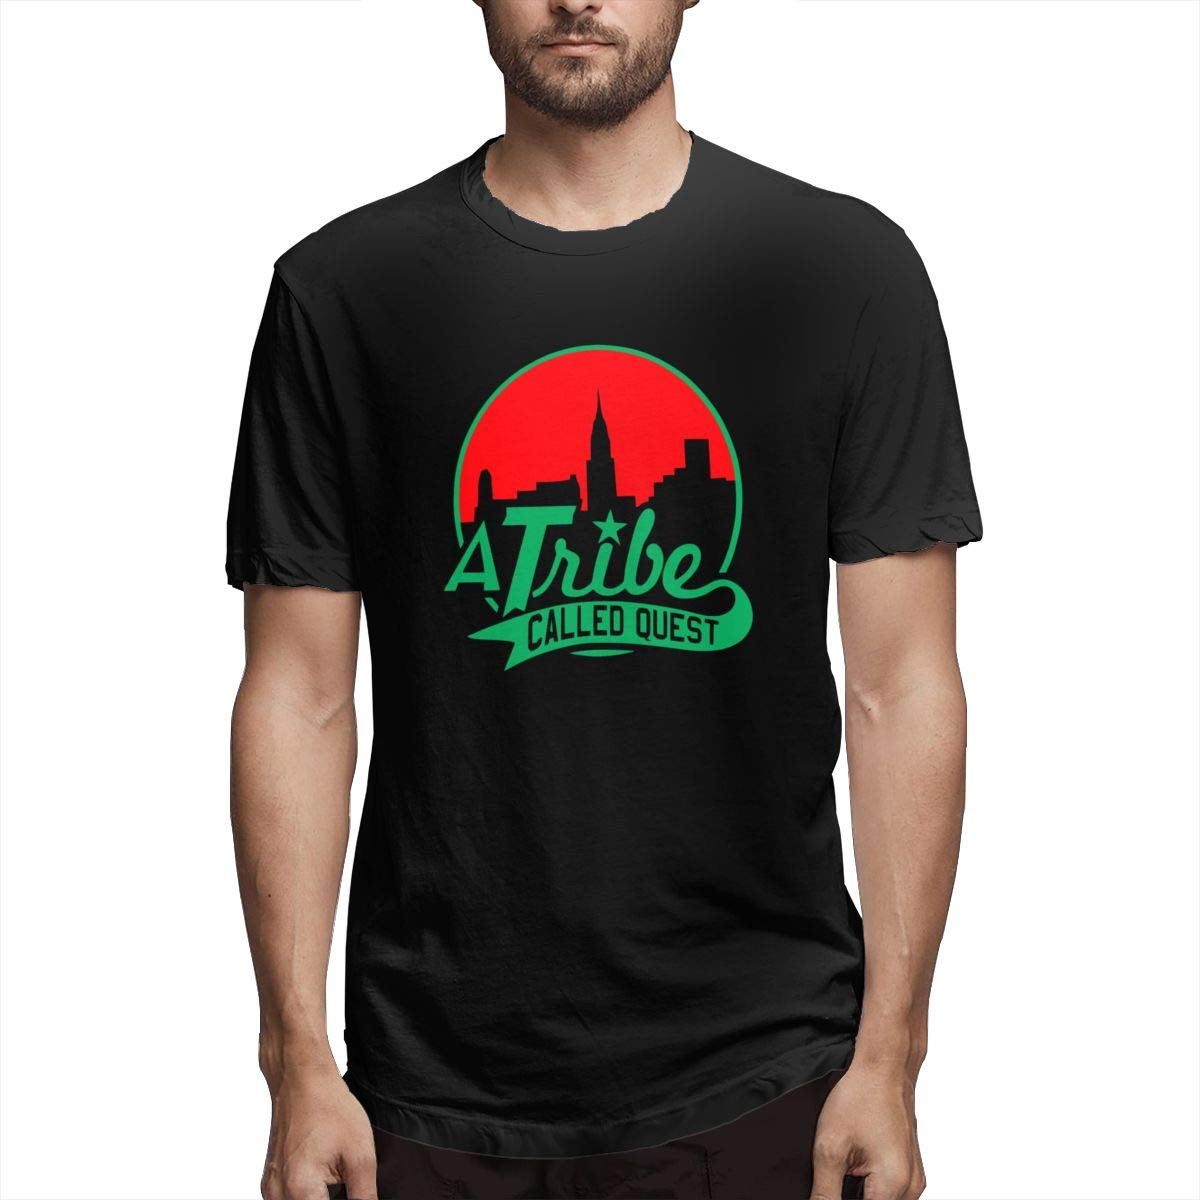 Linqarcon Mens Design with A Tribe Called Quest Logo School Round Neck Short Sleeve Tee